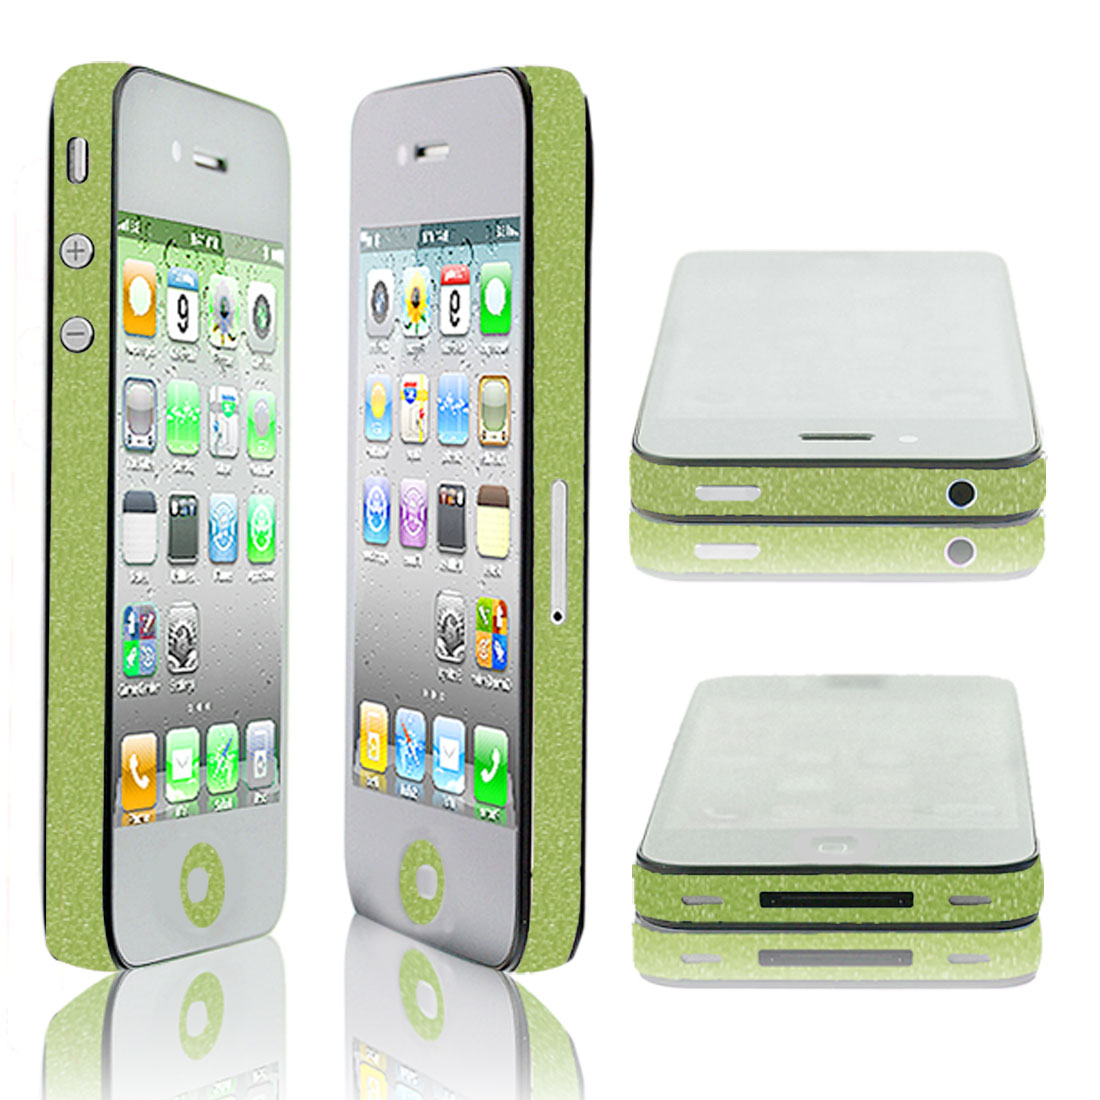 DIY Green Vinyl Side Edge Wrap Decal Film Sticker for iPhone 4 4G 4S 4GS